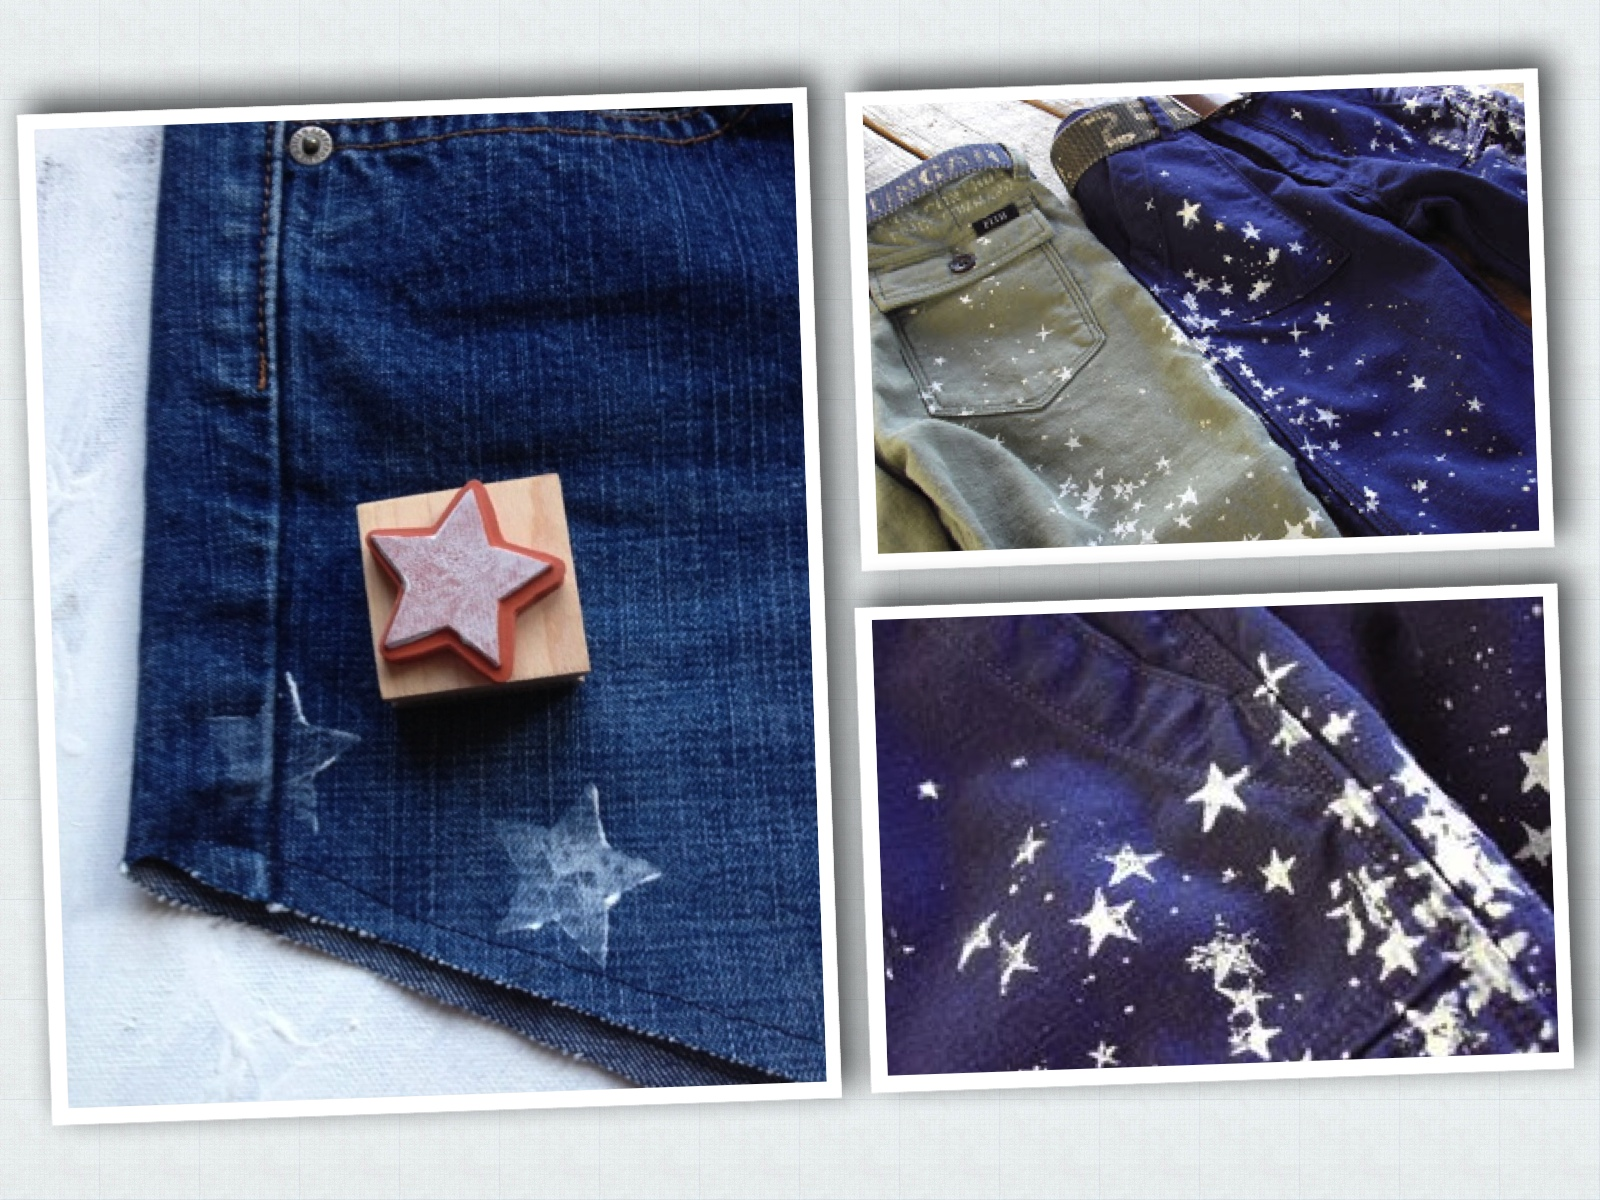 For DIY Allover Star Printed Denim,  La Vie en Rose  has a thorough tutorial for making your own Allover Star Printed Denim Shorts which include step by step directions with photos.Her first steps are for making cut-off shorts, you can skip those steps if you are making All Over Star Printed Jeans, Jacket, or Shift Dress. I also included 2 photos above which are placement inspiration for making your own Star Printed Jeans!